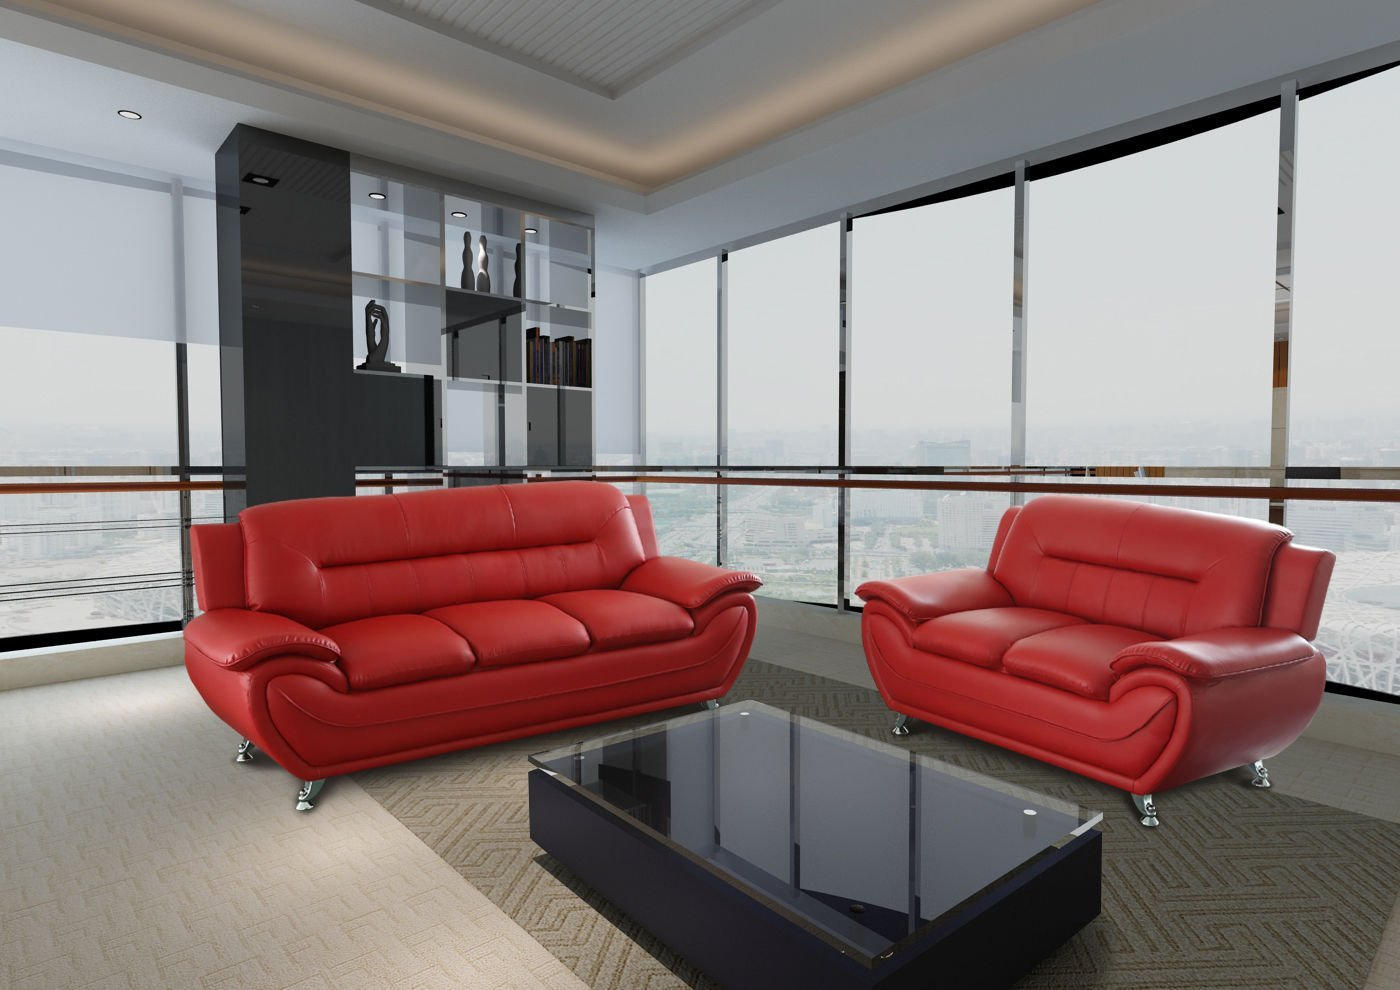 The Best Red Leather Sofa For Your House Cool Ideas For Home